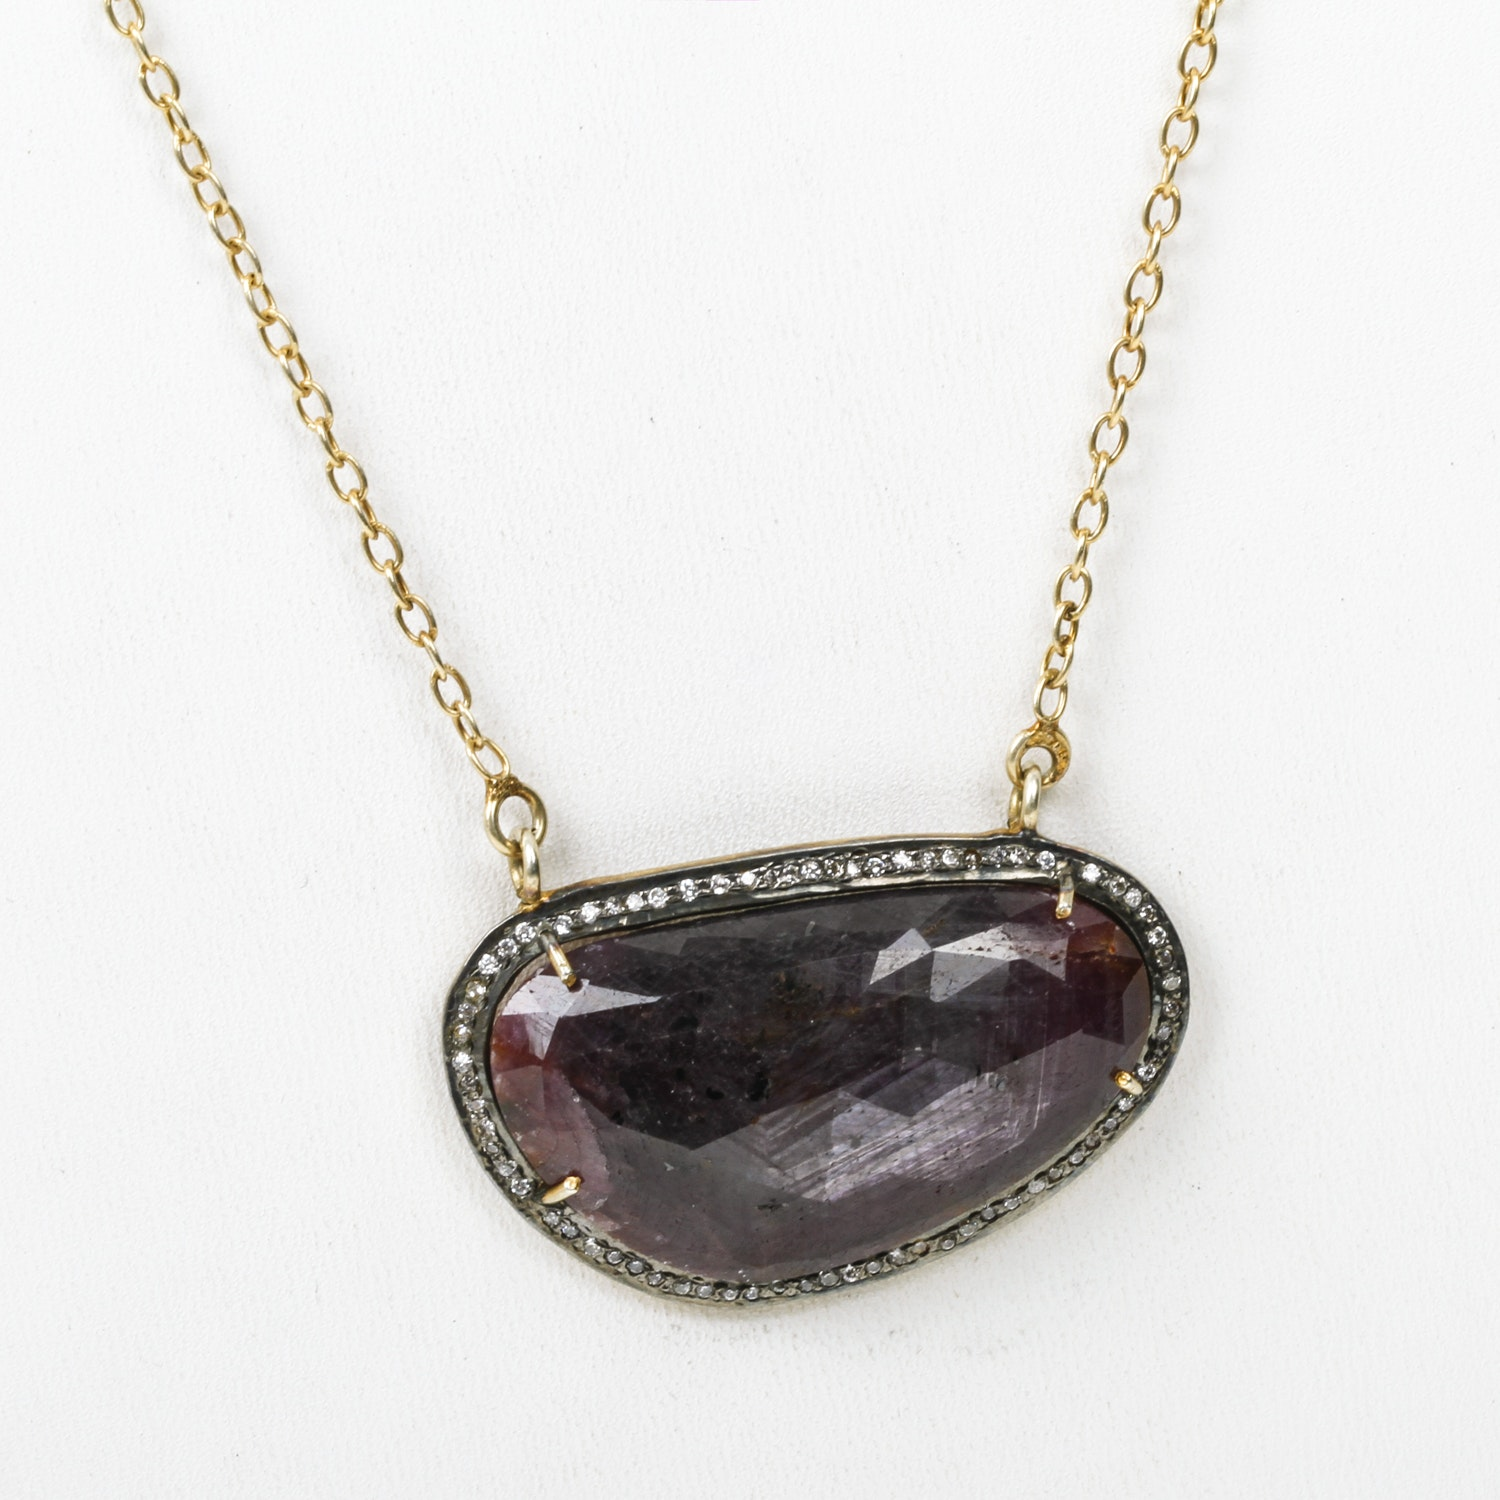 Sterling Silver, Rough Ruby, and Cubic Zirconia Pendant Necklace